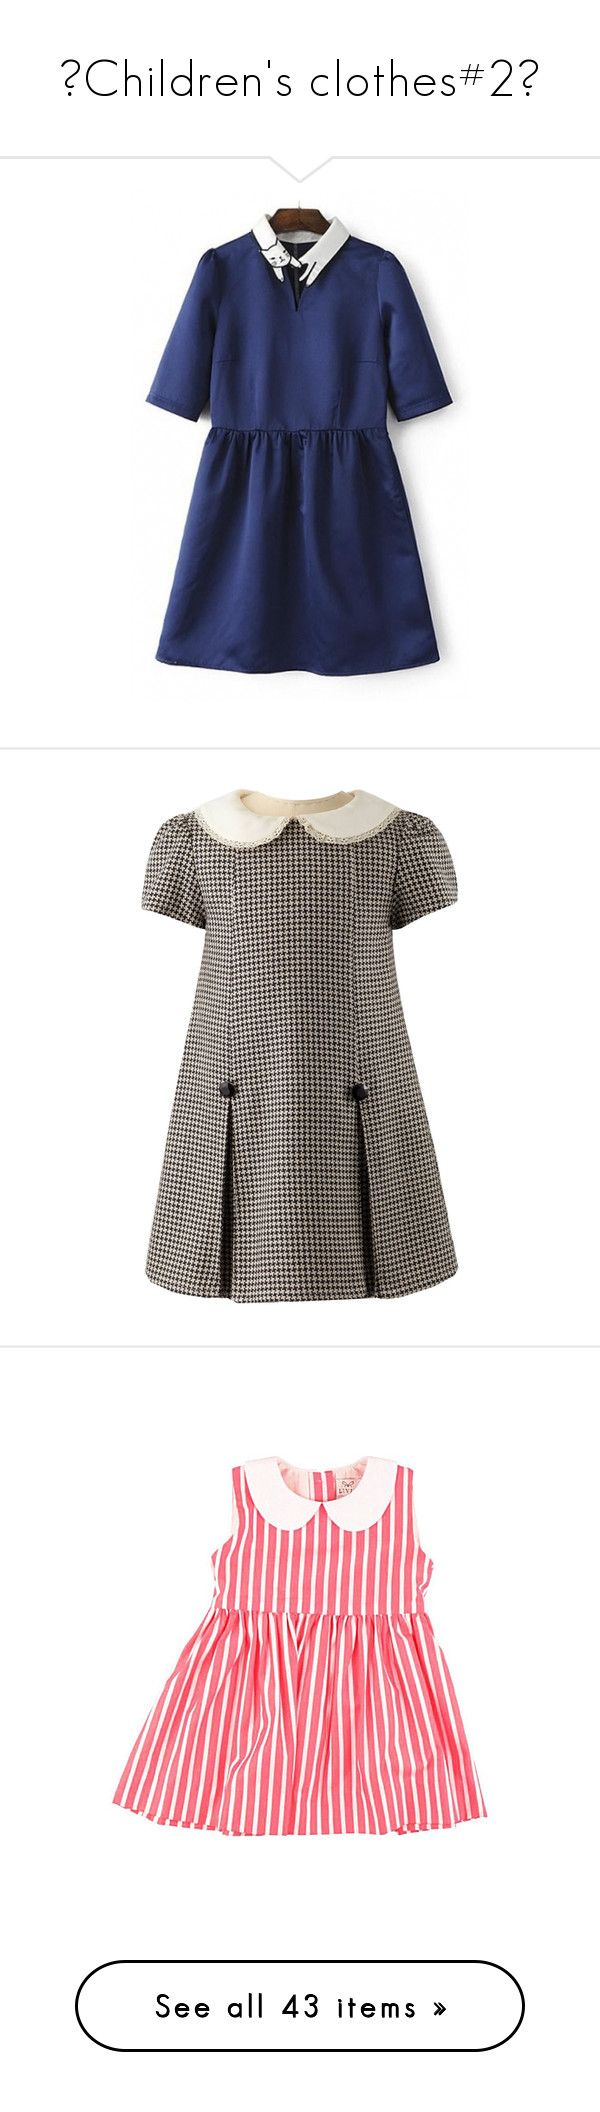 """""""♥Children's clothes#2♥"""" by lessalice ❤ liked on Polyvore featuring dresses, color block mini dress, elbow length sleeve dress, block print dresses, colorblocked dress, elbow length dresses, rachel riley, shift dress, houndstooth dress and hounds tooth dress"""